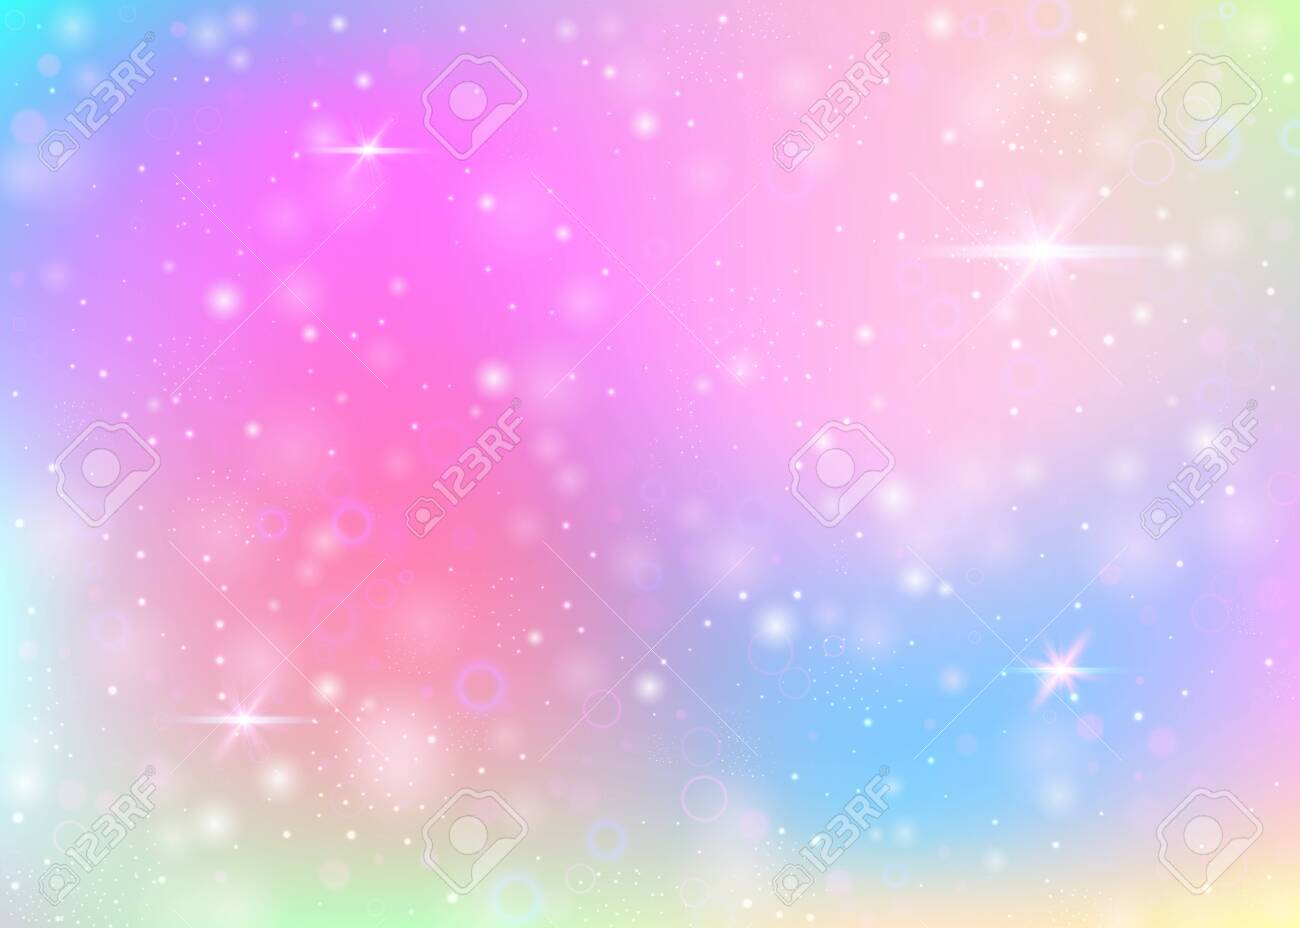 Unicorn background with rainbow mesh. Girlie universe banner in princess colors. Fantasy gradient backdrop with hologram. Holographic unicorn background with magic sparkles, stars and blurs. - 151176249